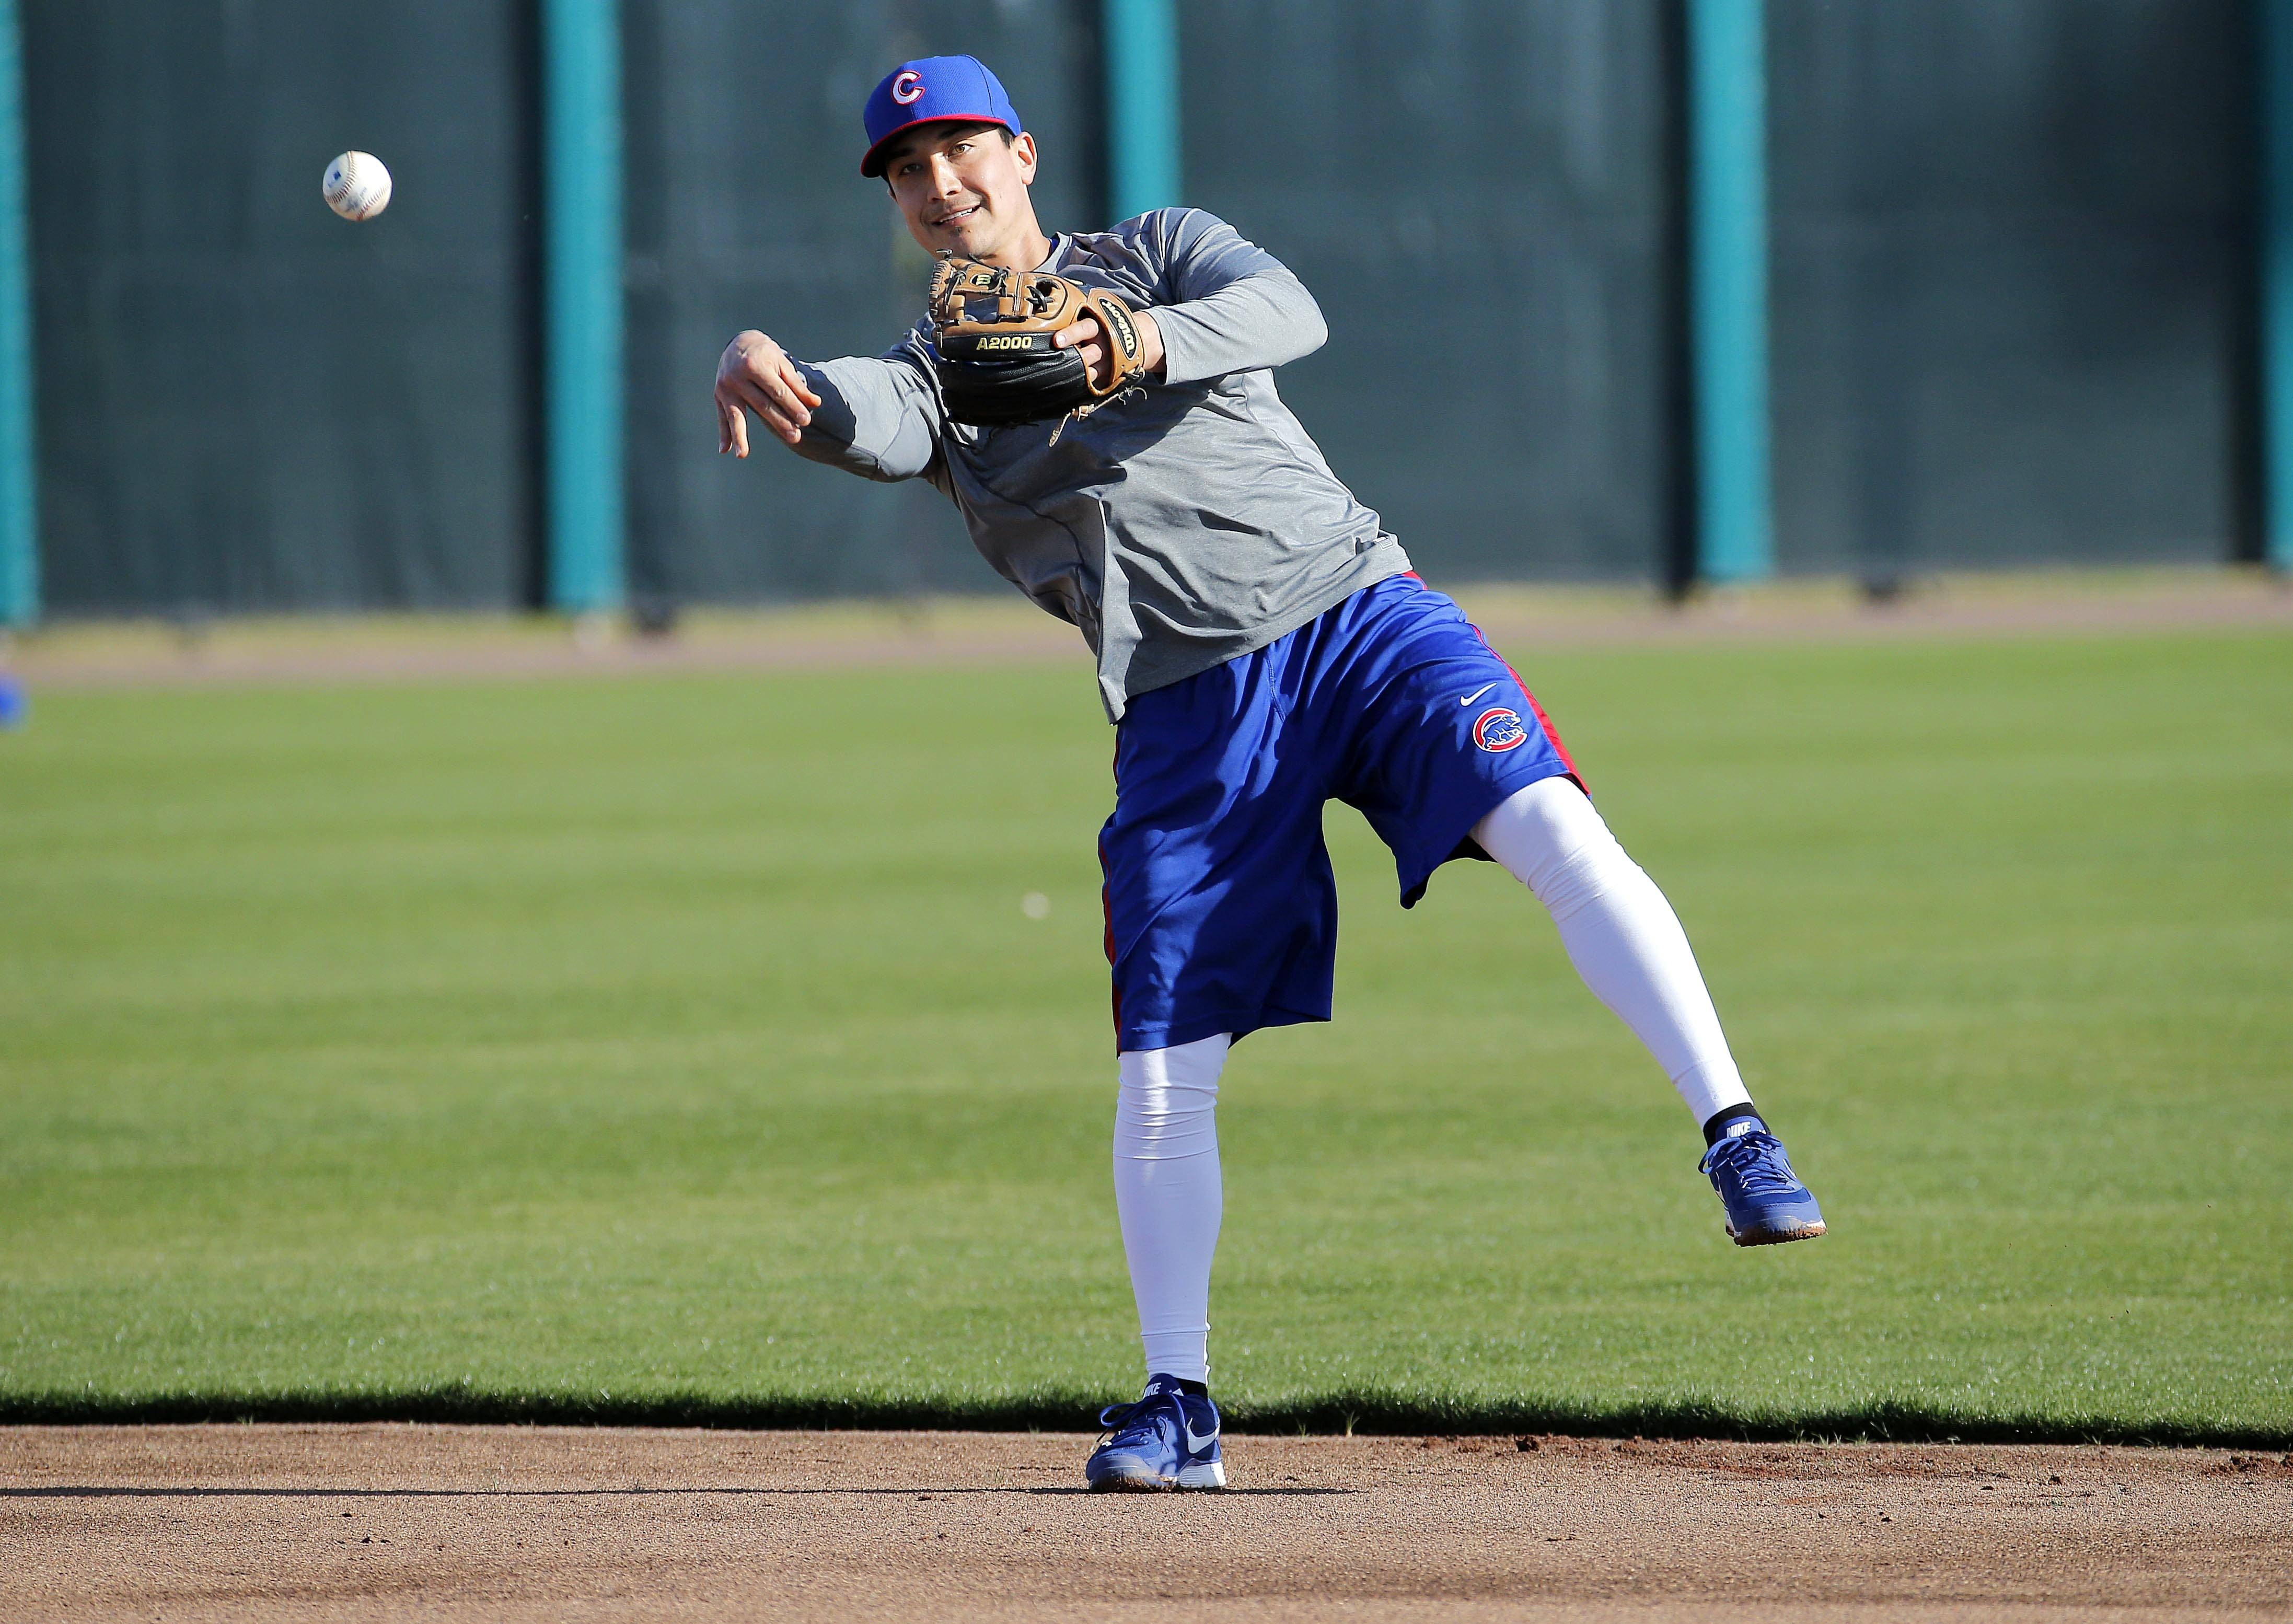 Cubs second baseman Darwin Barney throws before the team's first spring-training practice, Friday, Feb. 14, 2014, in Peoria, Ariz.